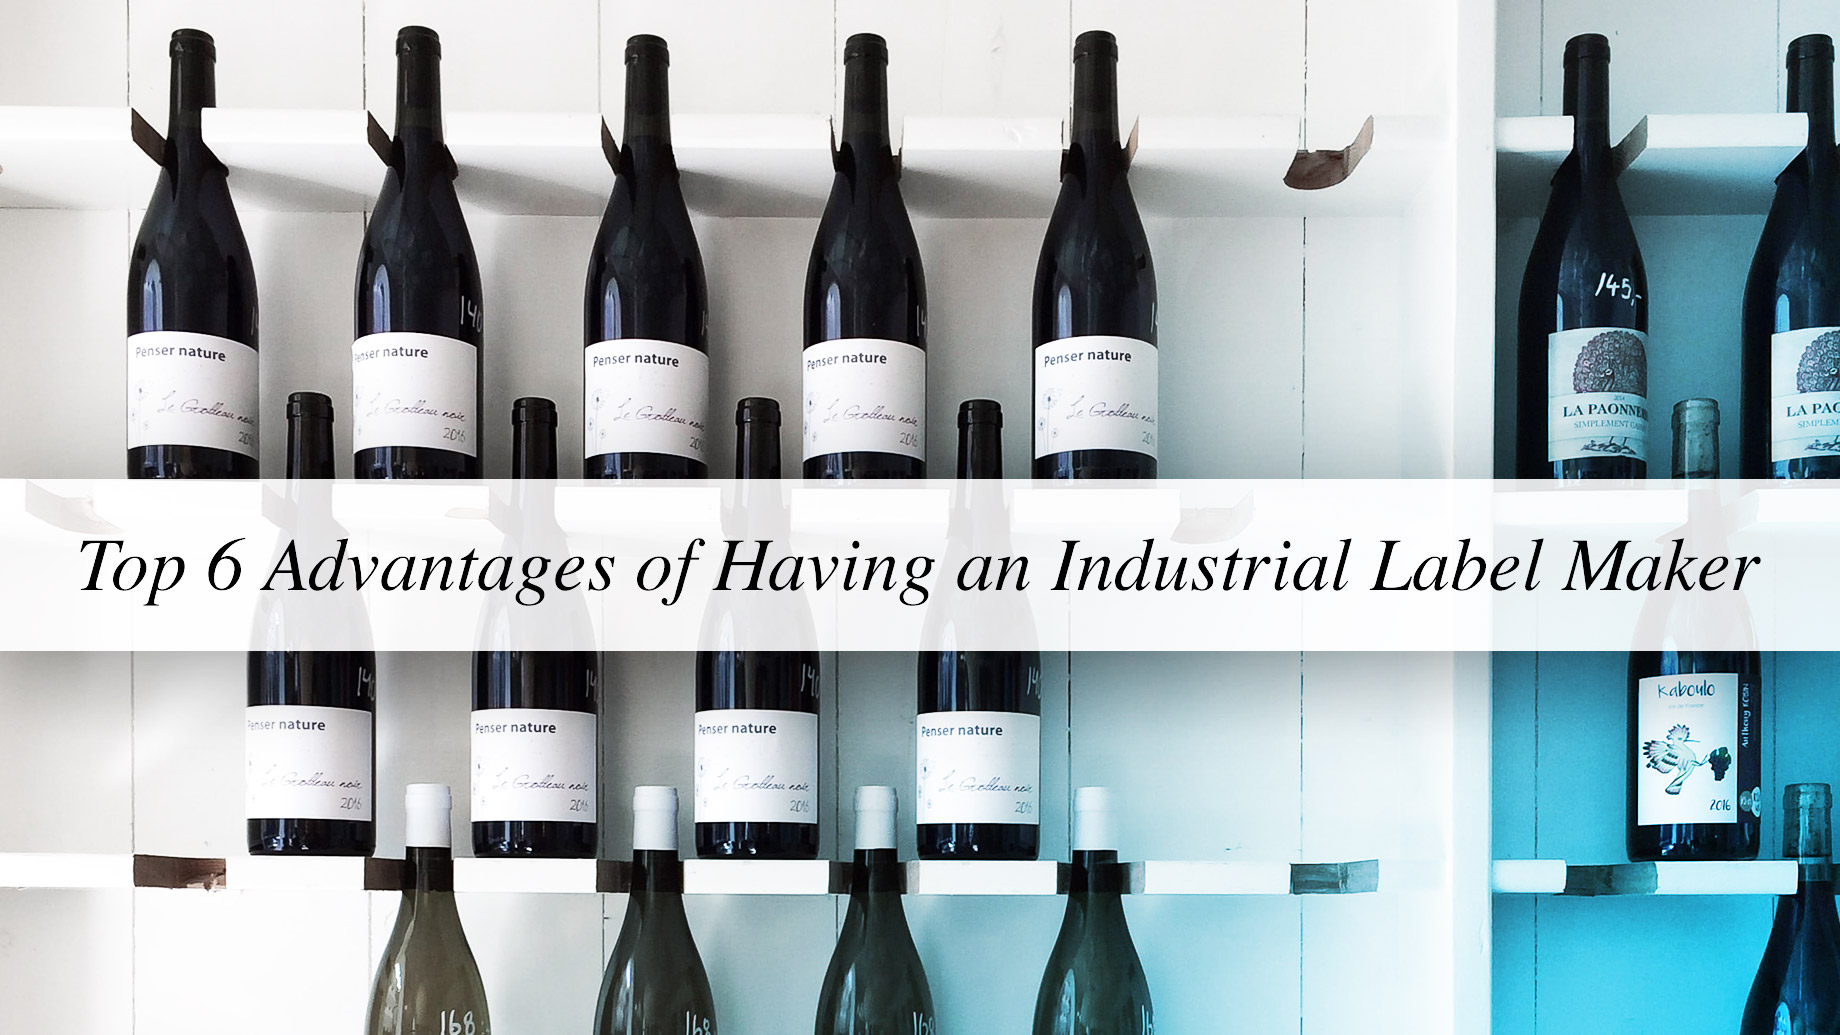 Top 6 Advantages of Having an Industrial Label Maker